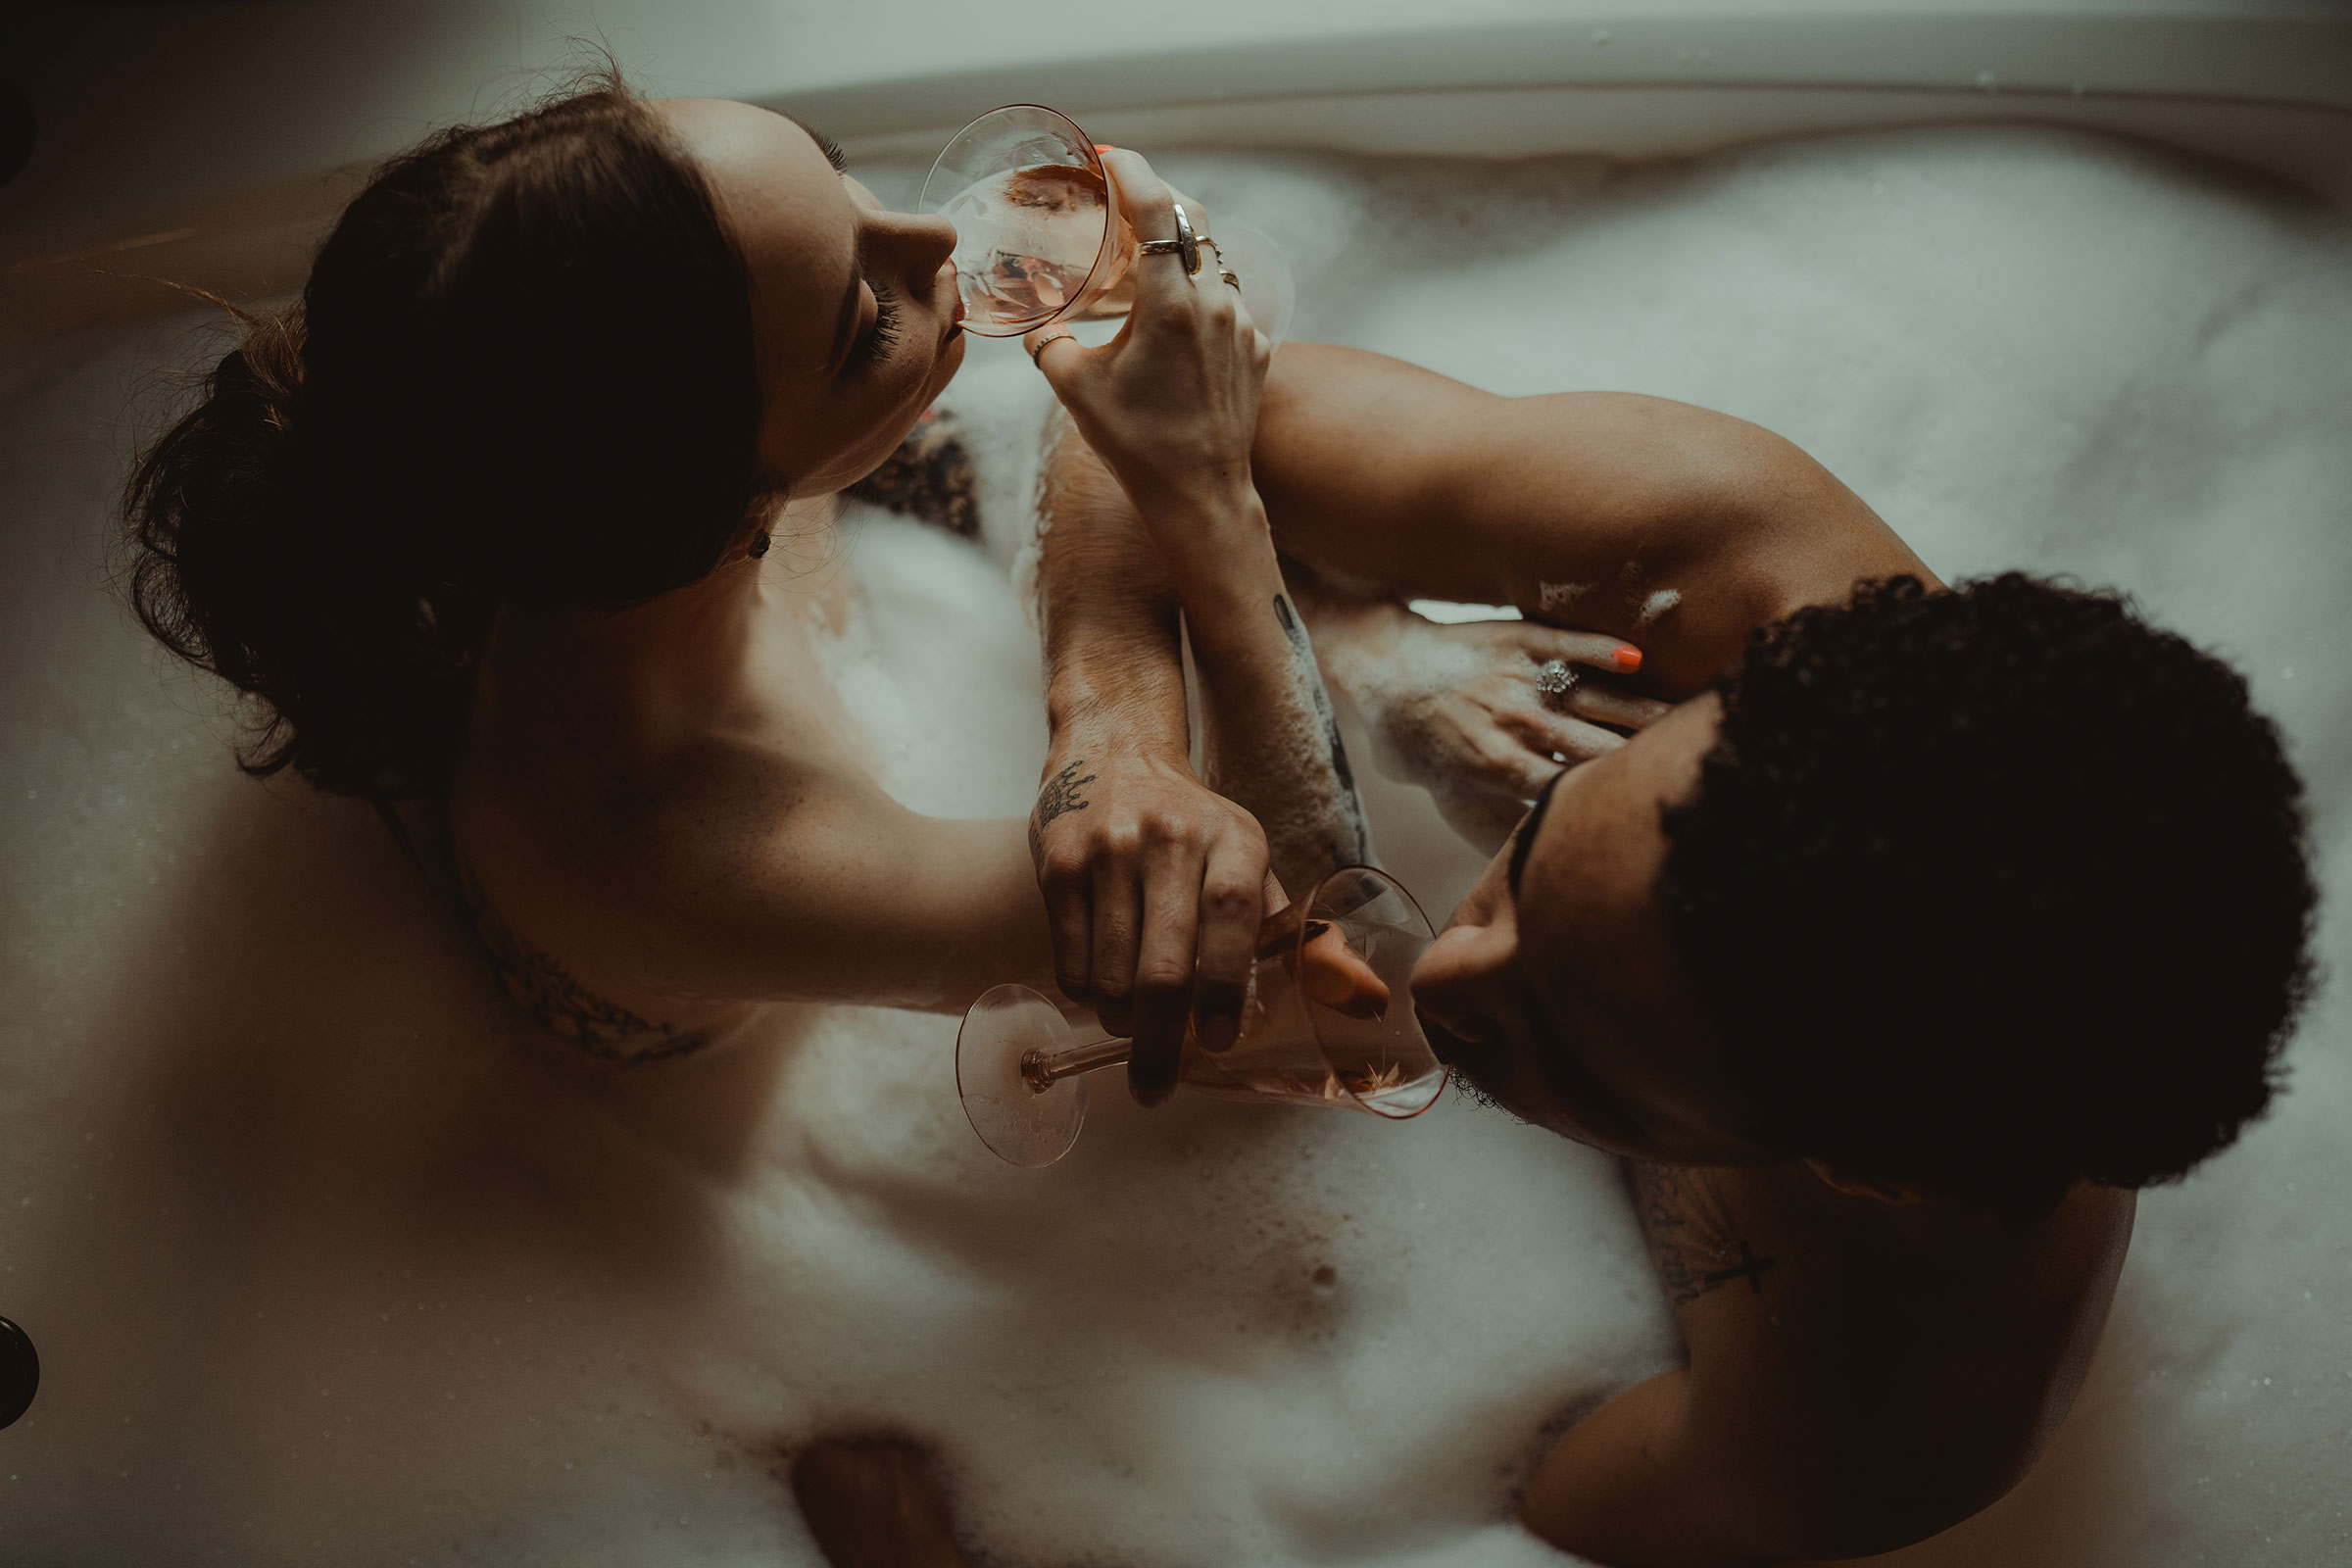 couple-drinking-rose-in-the-bathtub-engagement-desmoines-iowa-raelyn-ramey-photography.jpg